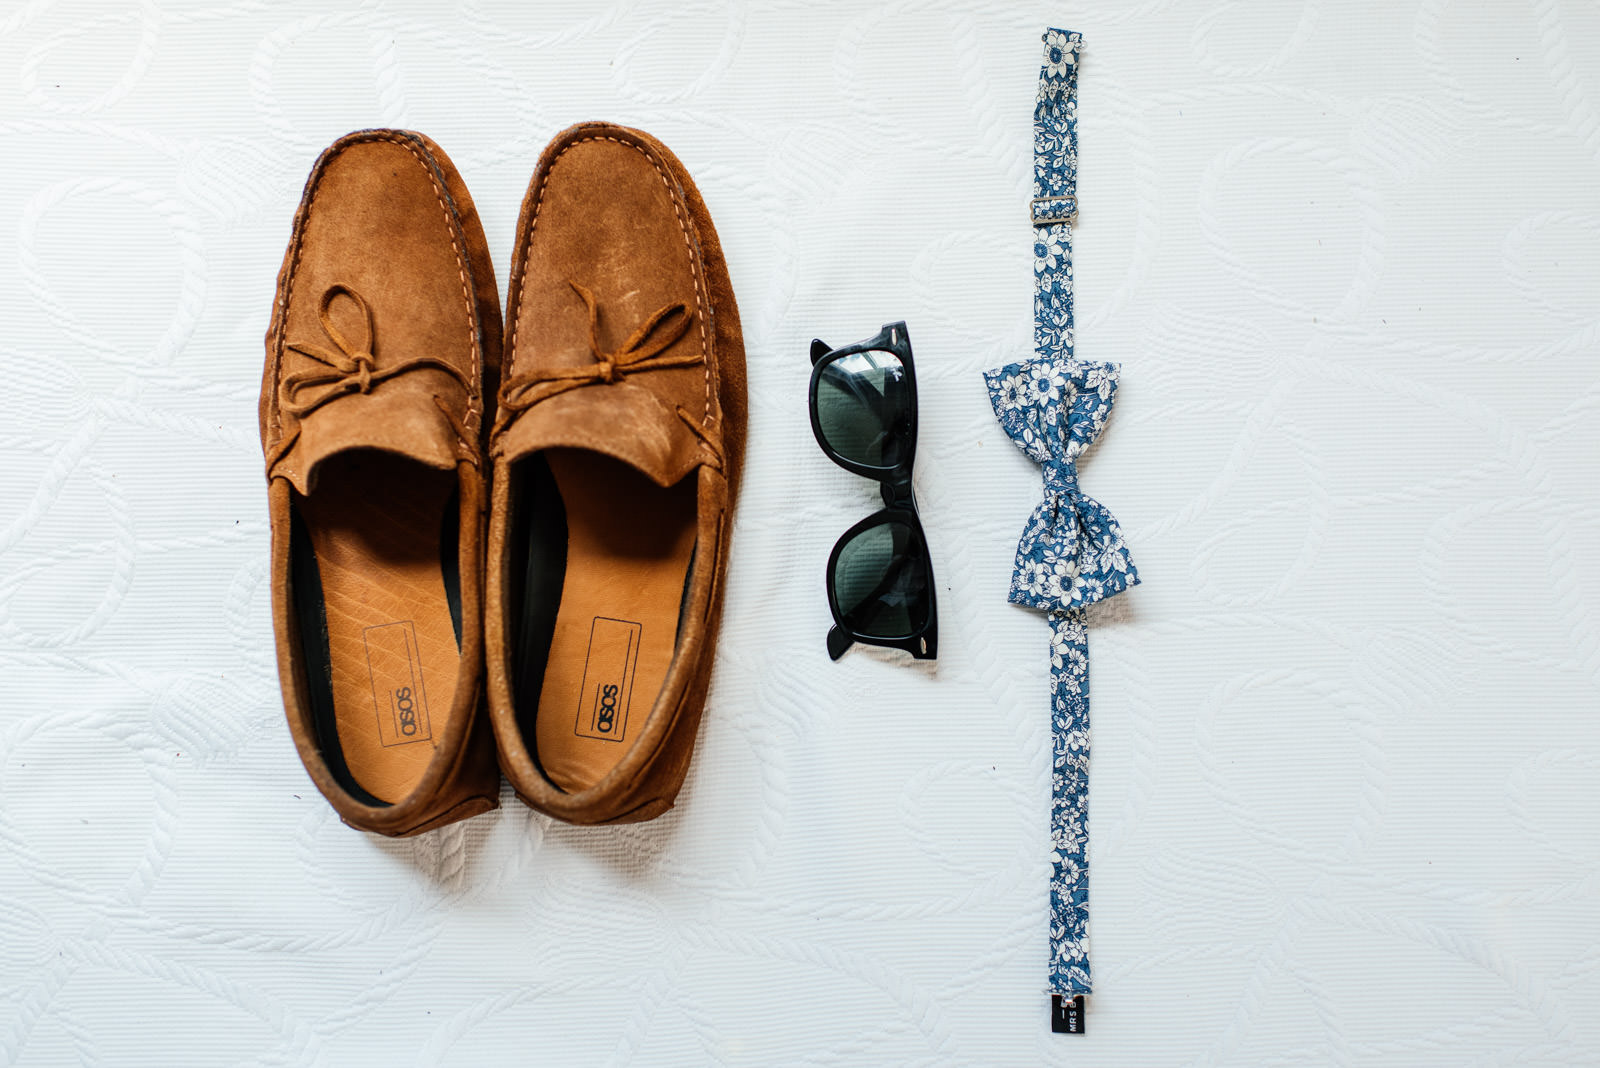 Groom details shoes, sun glasses and bowtie